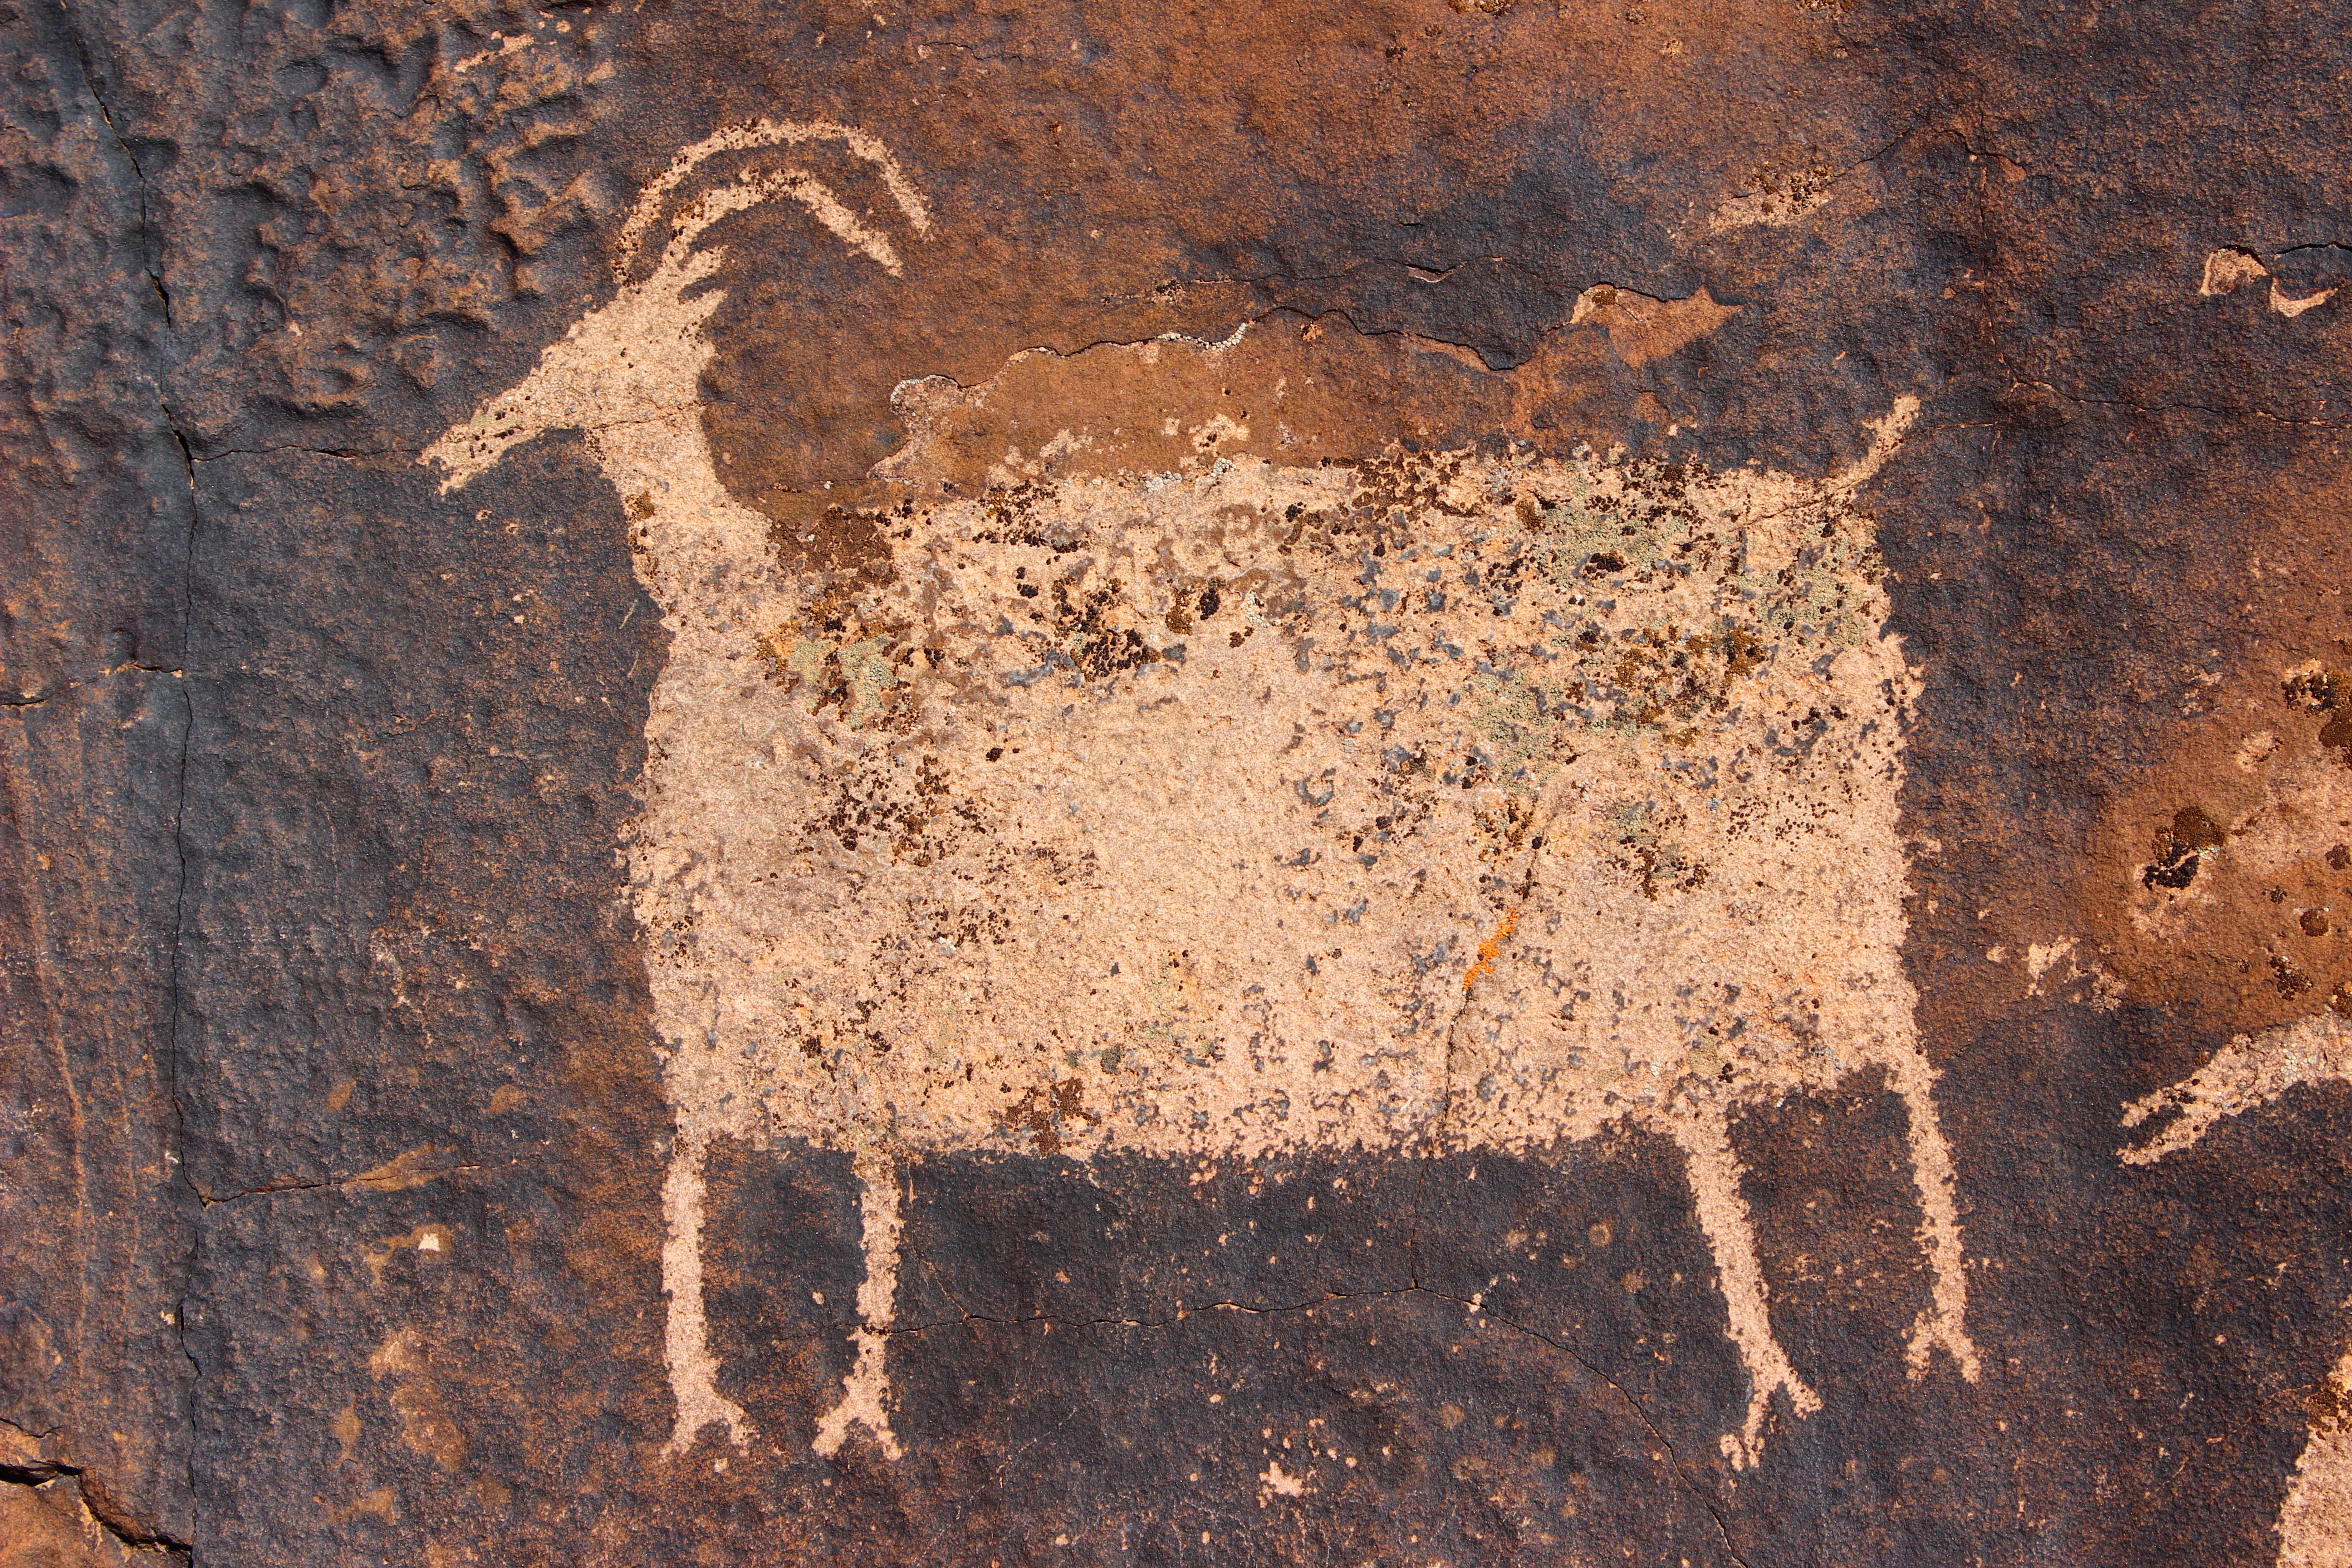 According to the Utah Division of Wildlife Resources, petroglyph and pictograph depictions of Bighorn Sheep are the most common wildlife portrayed at archaeological sites | Photo by Don Gilman, St. George News